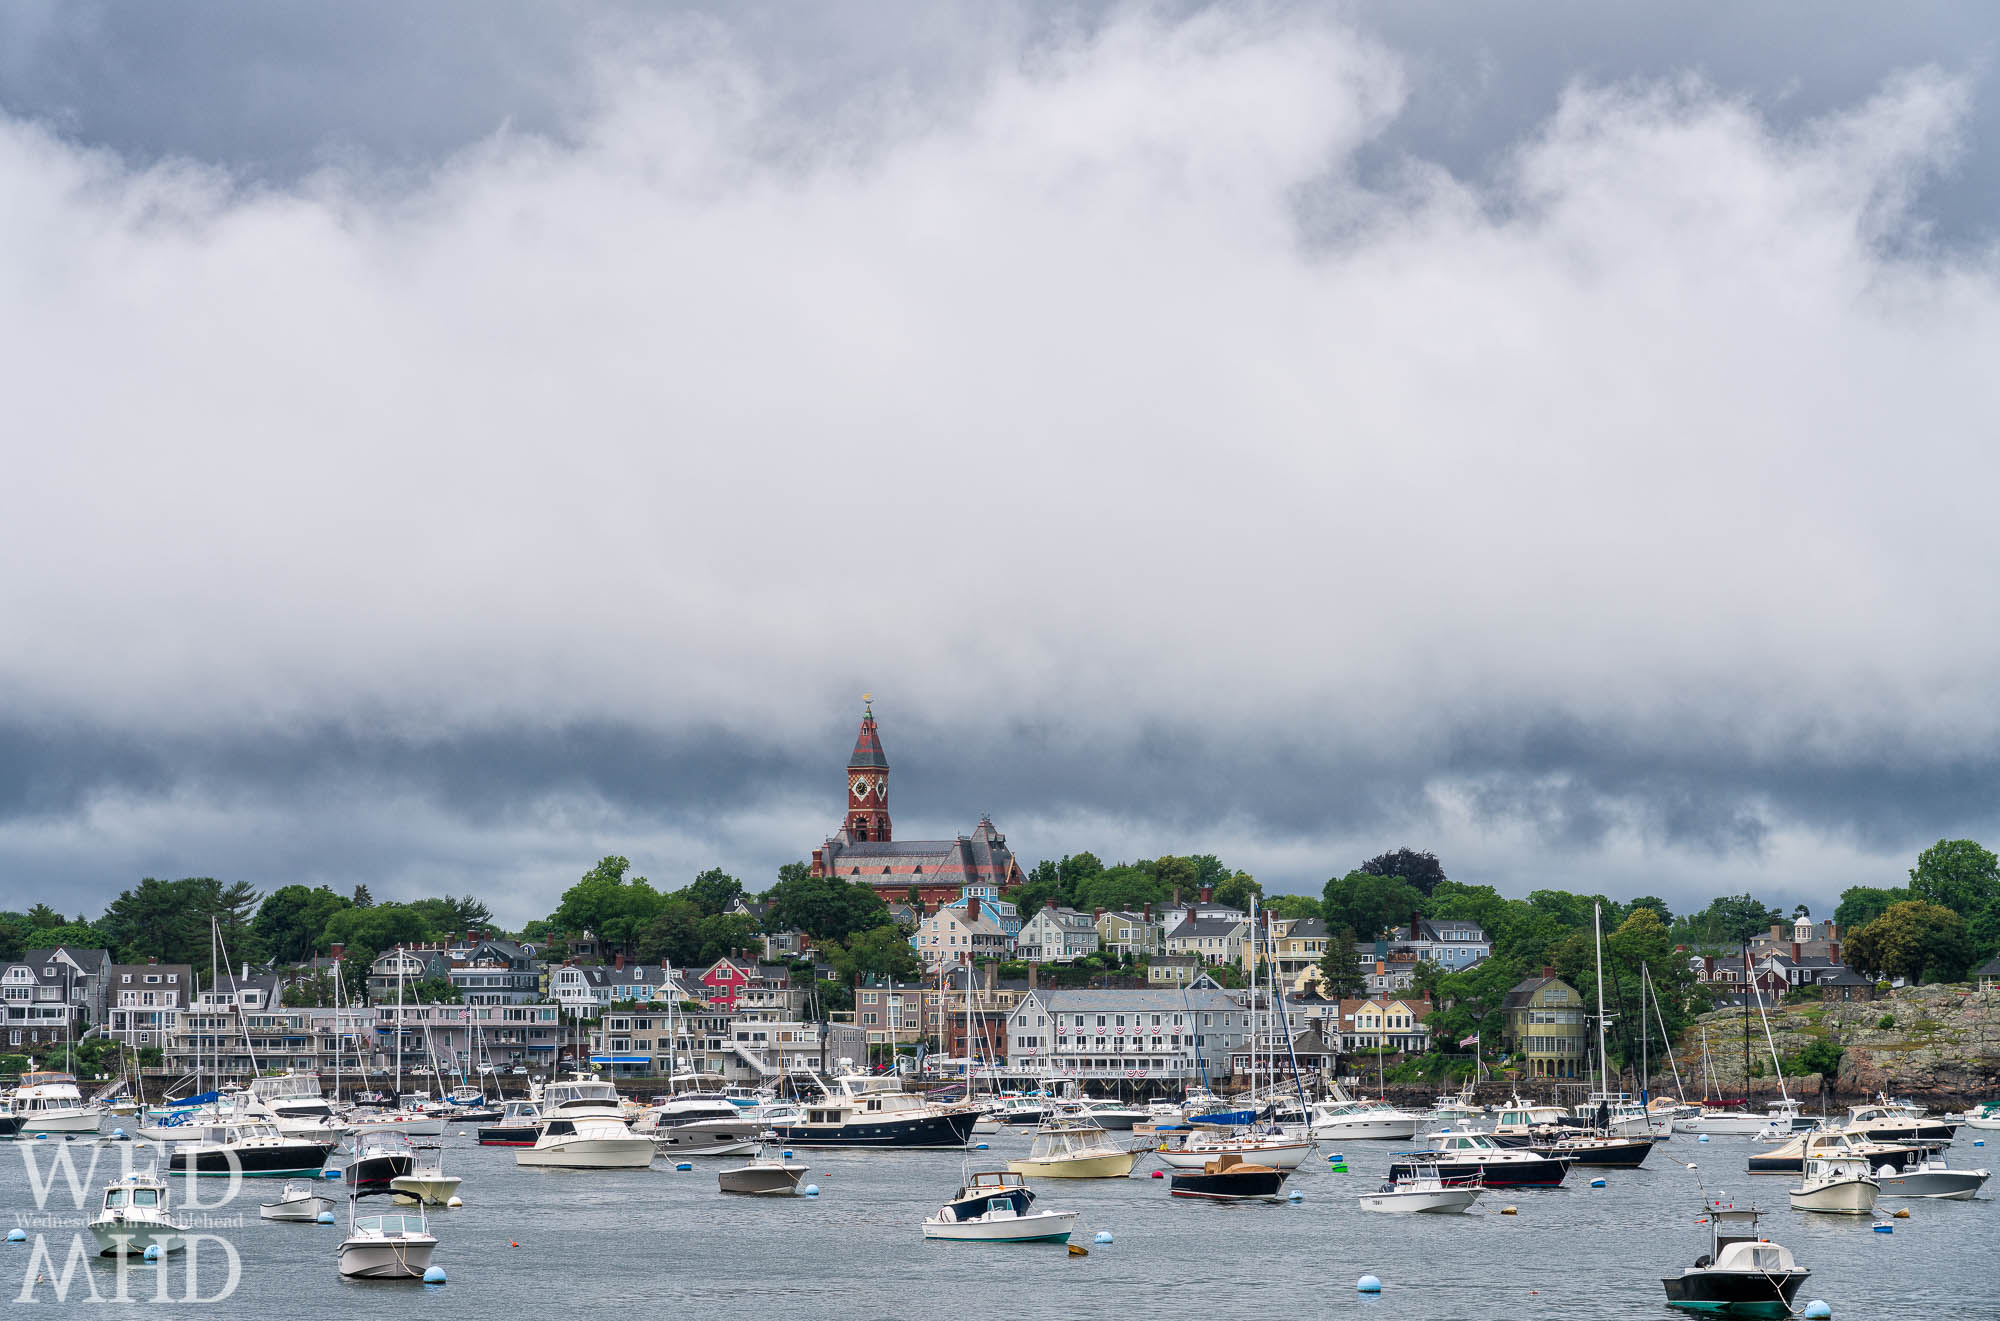 Abbot Hall is seen breaking through the clouds as a low bank hangs over Marblehead on July 4th